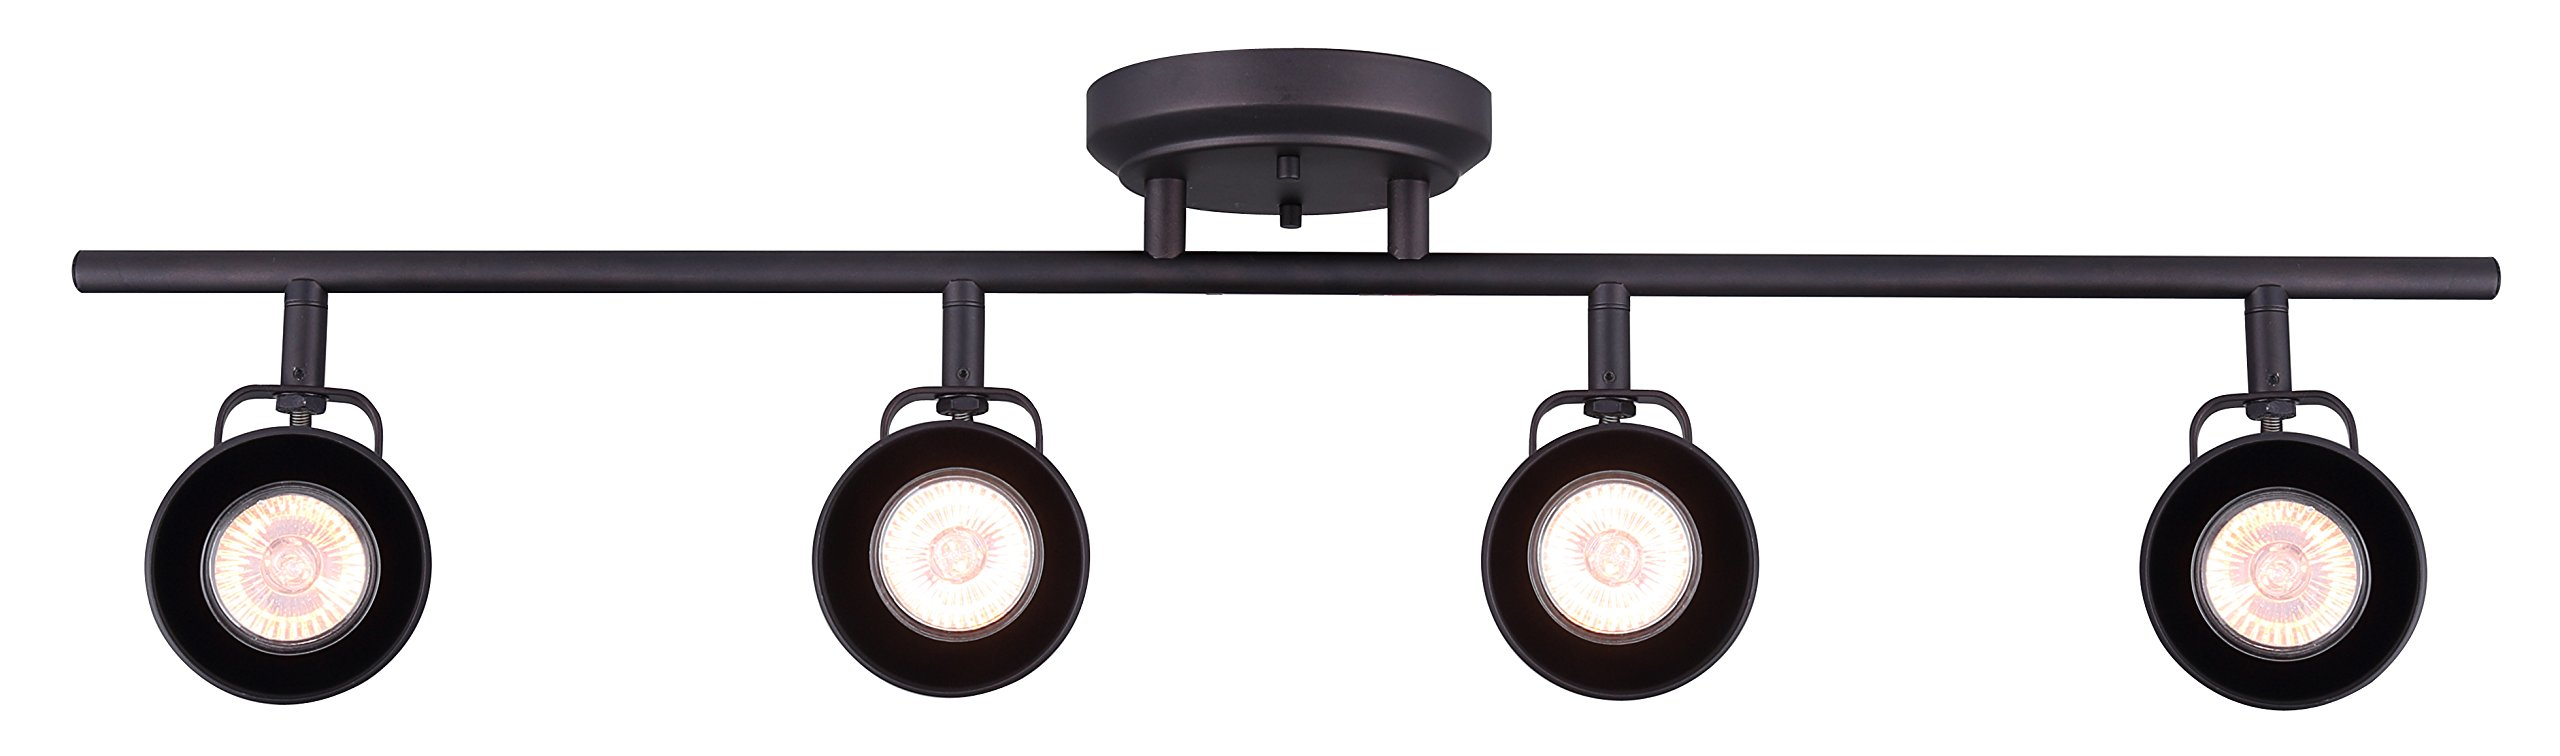 CANARM IT622A04ORB10 Ltd Polo 4 Light Track Rail Adjustable Heads, Oil Rubbed Bronze